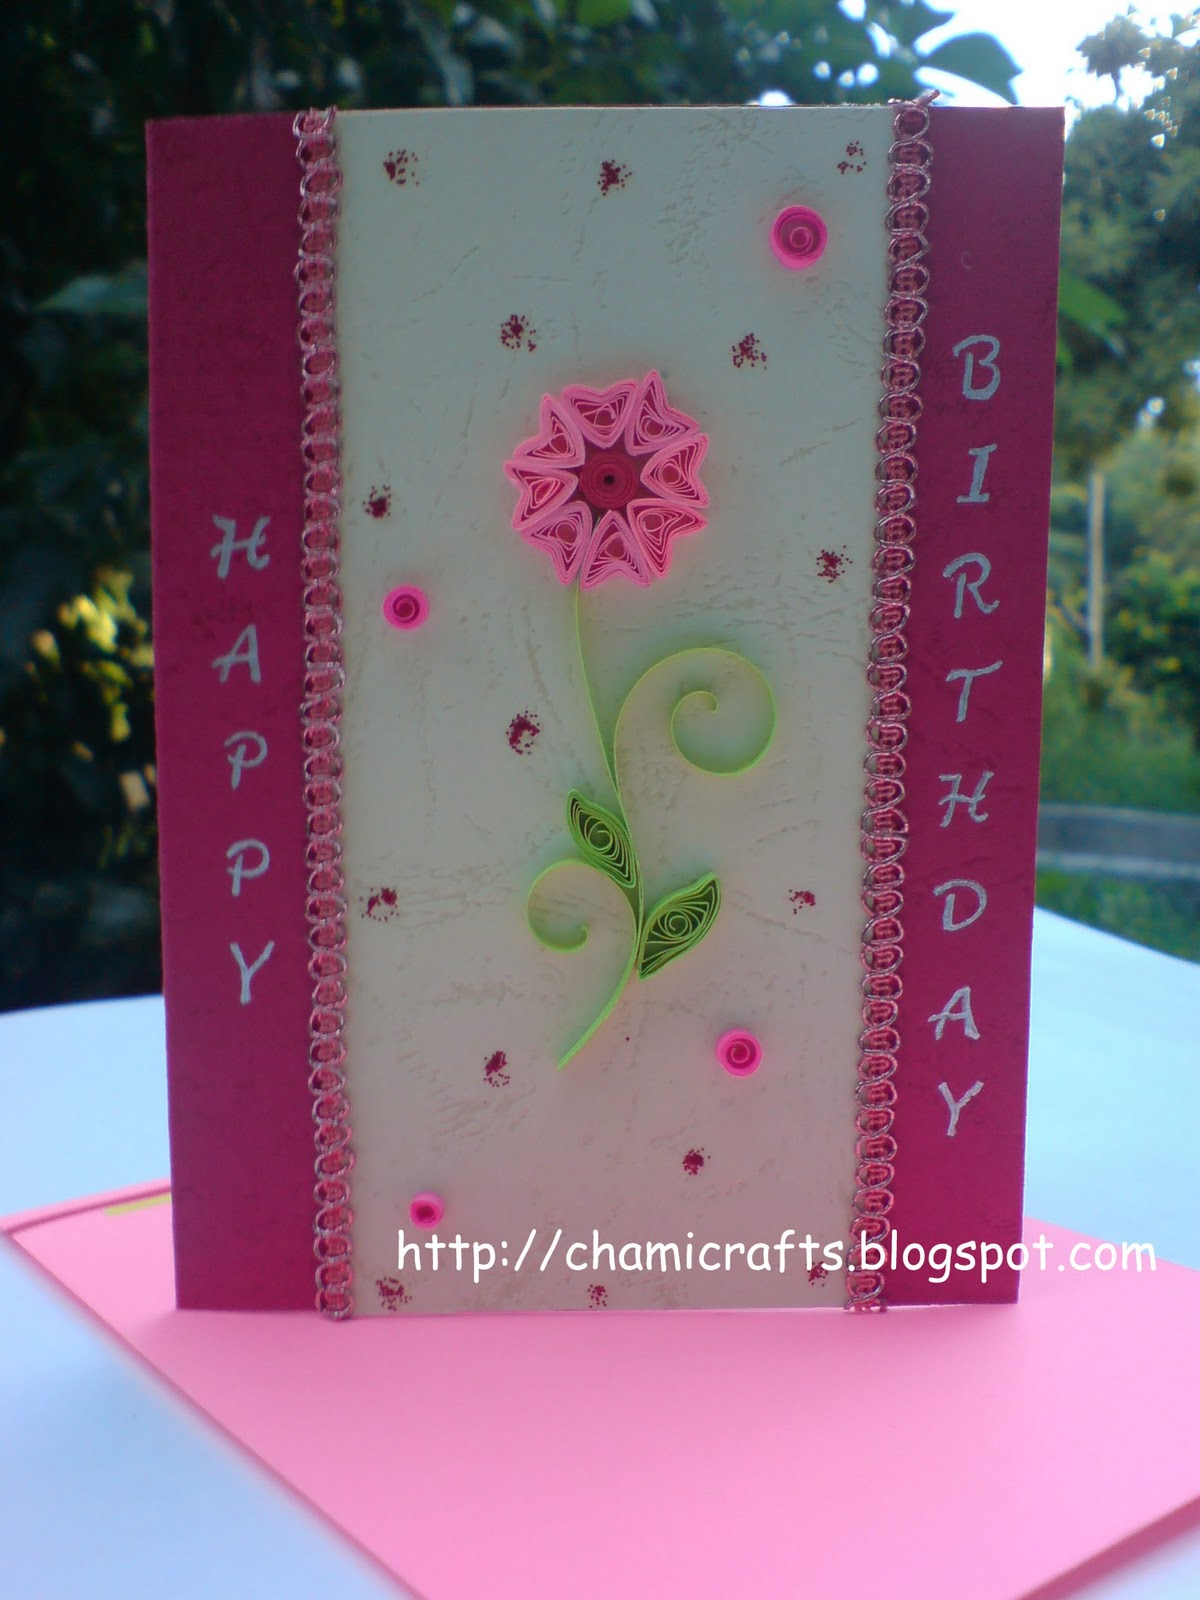 Chami Crafts Handmade Greeting Cards Another Birthday Card With